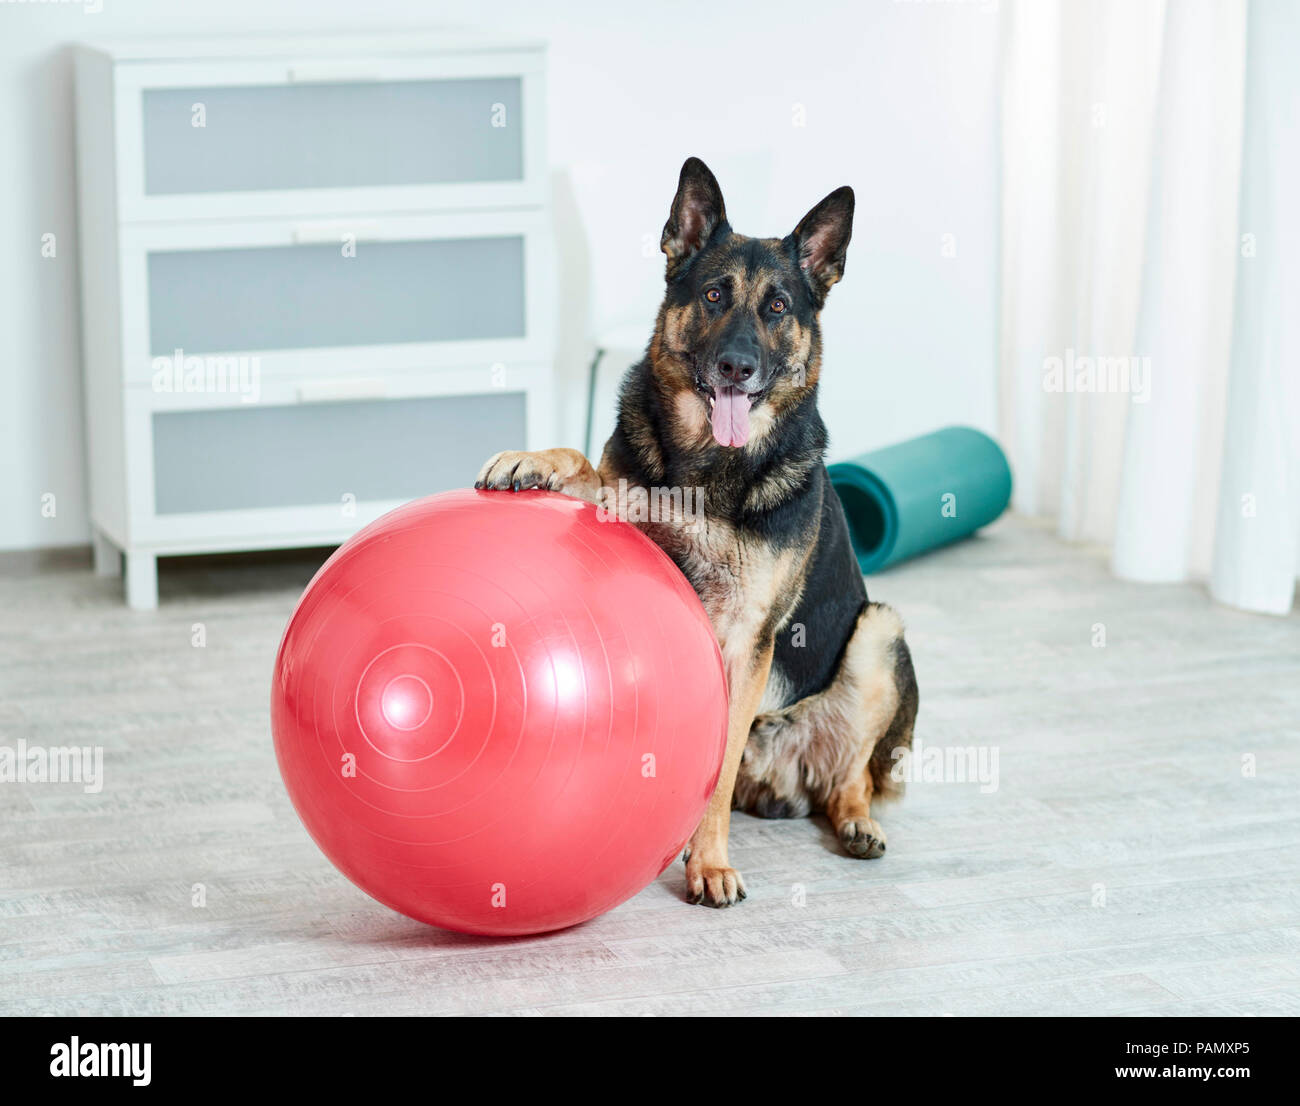 Physical therapy: German Shepherd, Alsatian sitting next to exercise ball. Germany. - Stock Image